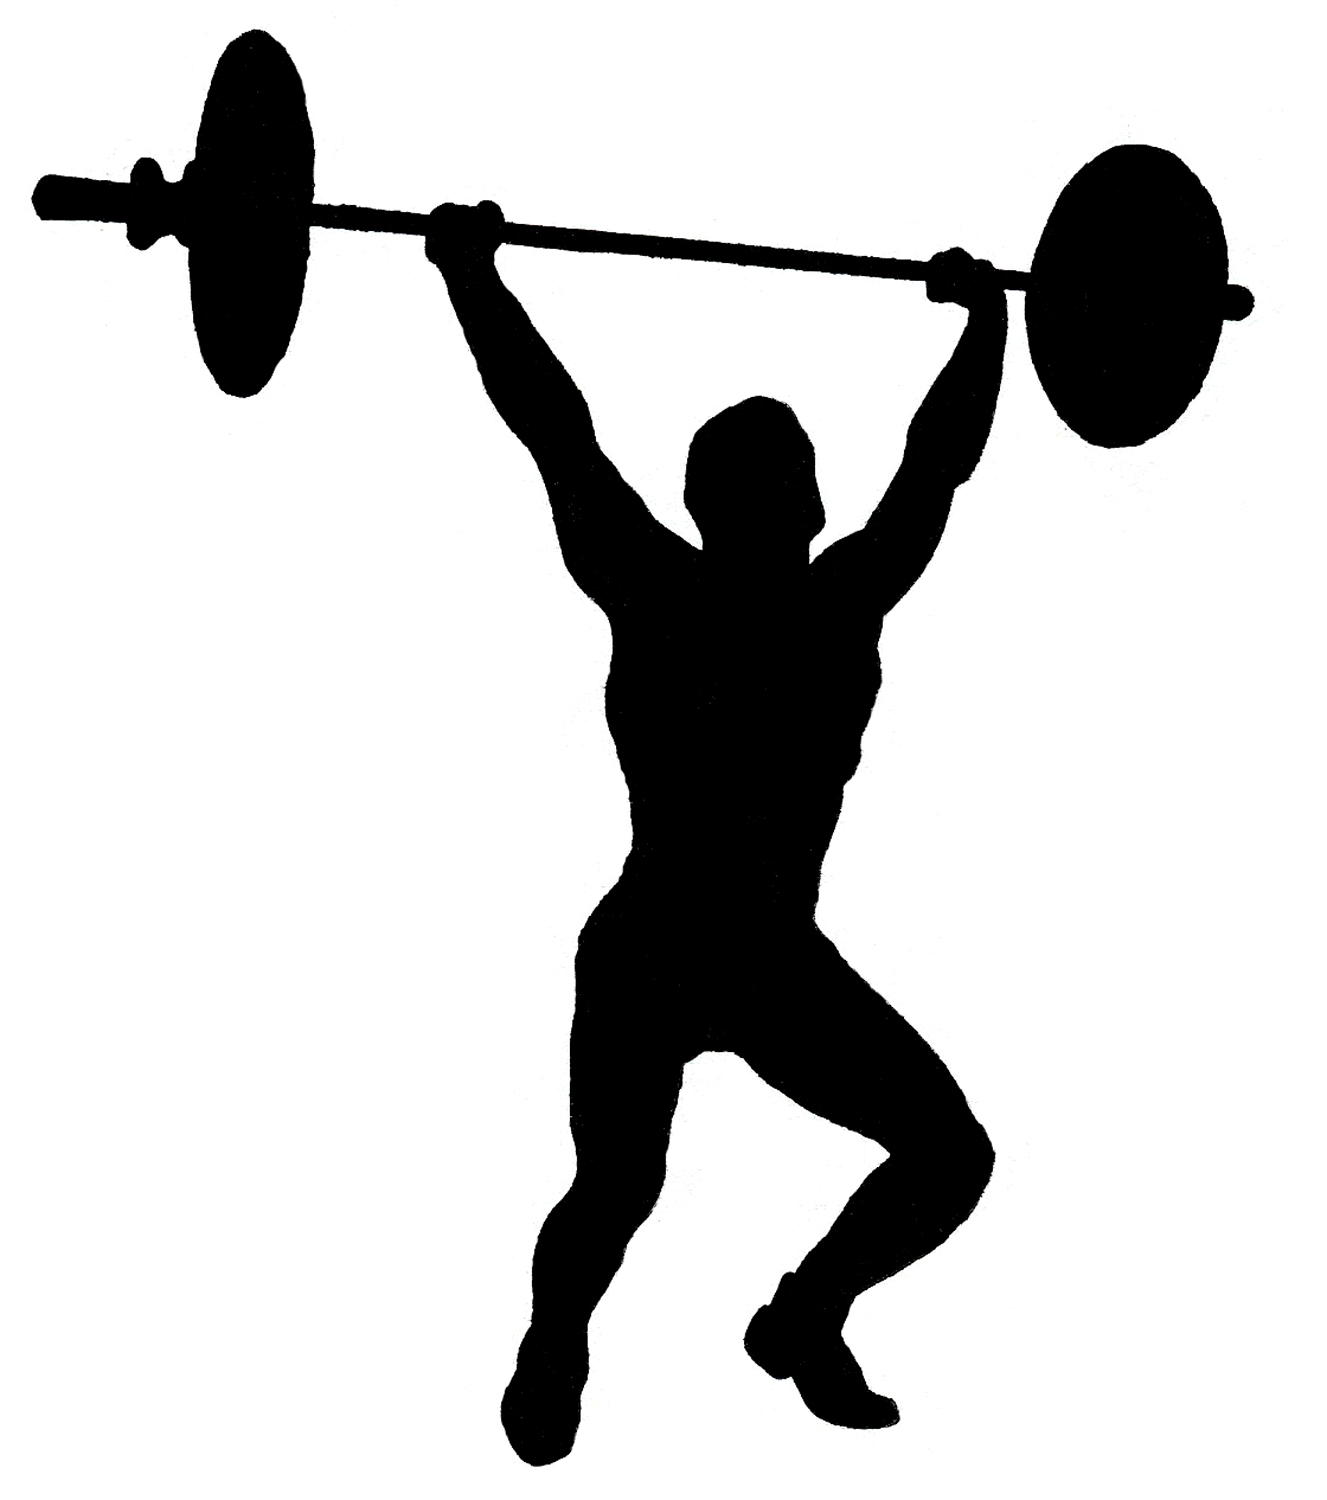 Barbell clipart silhouette. Vintage image circus strong